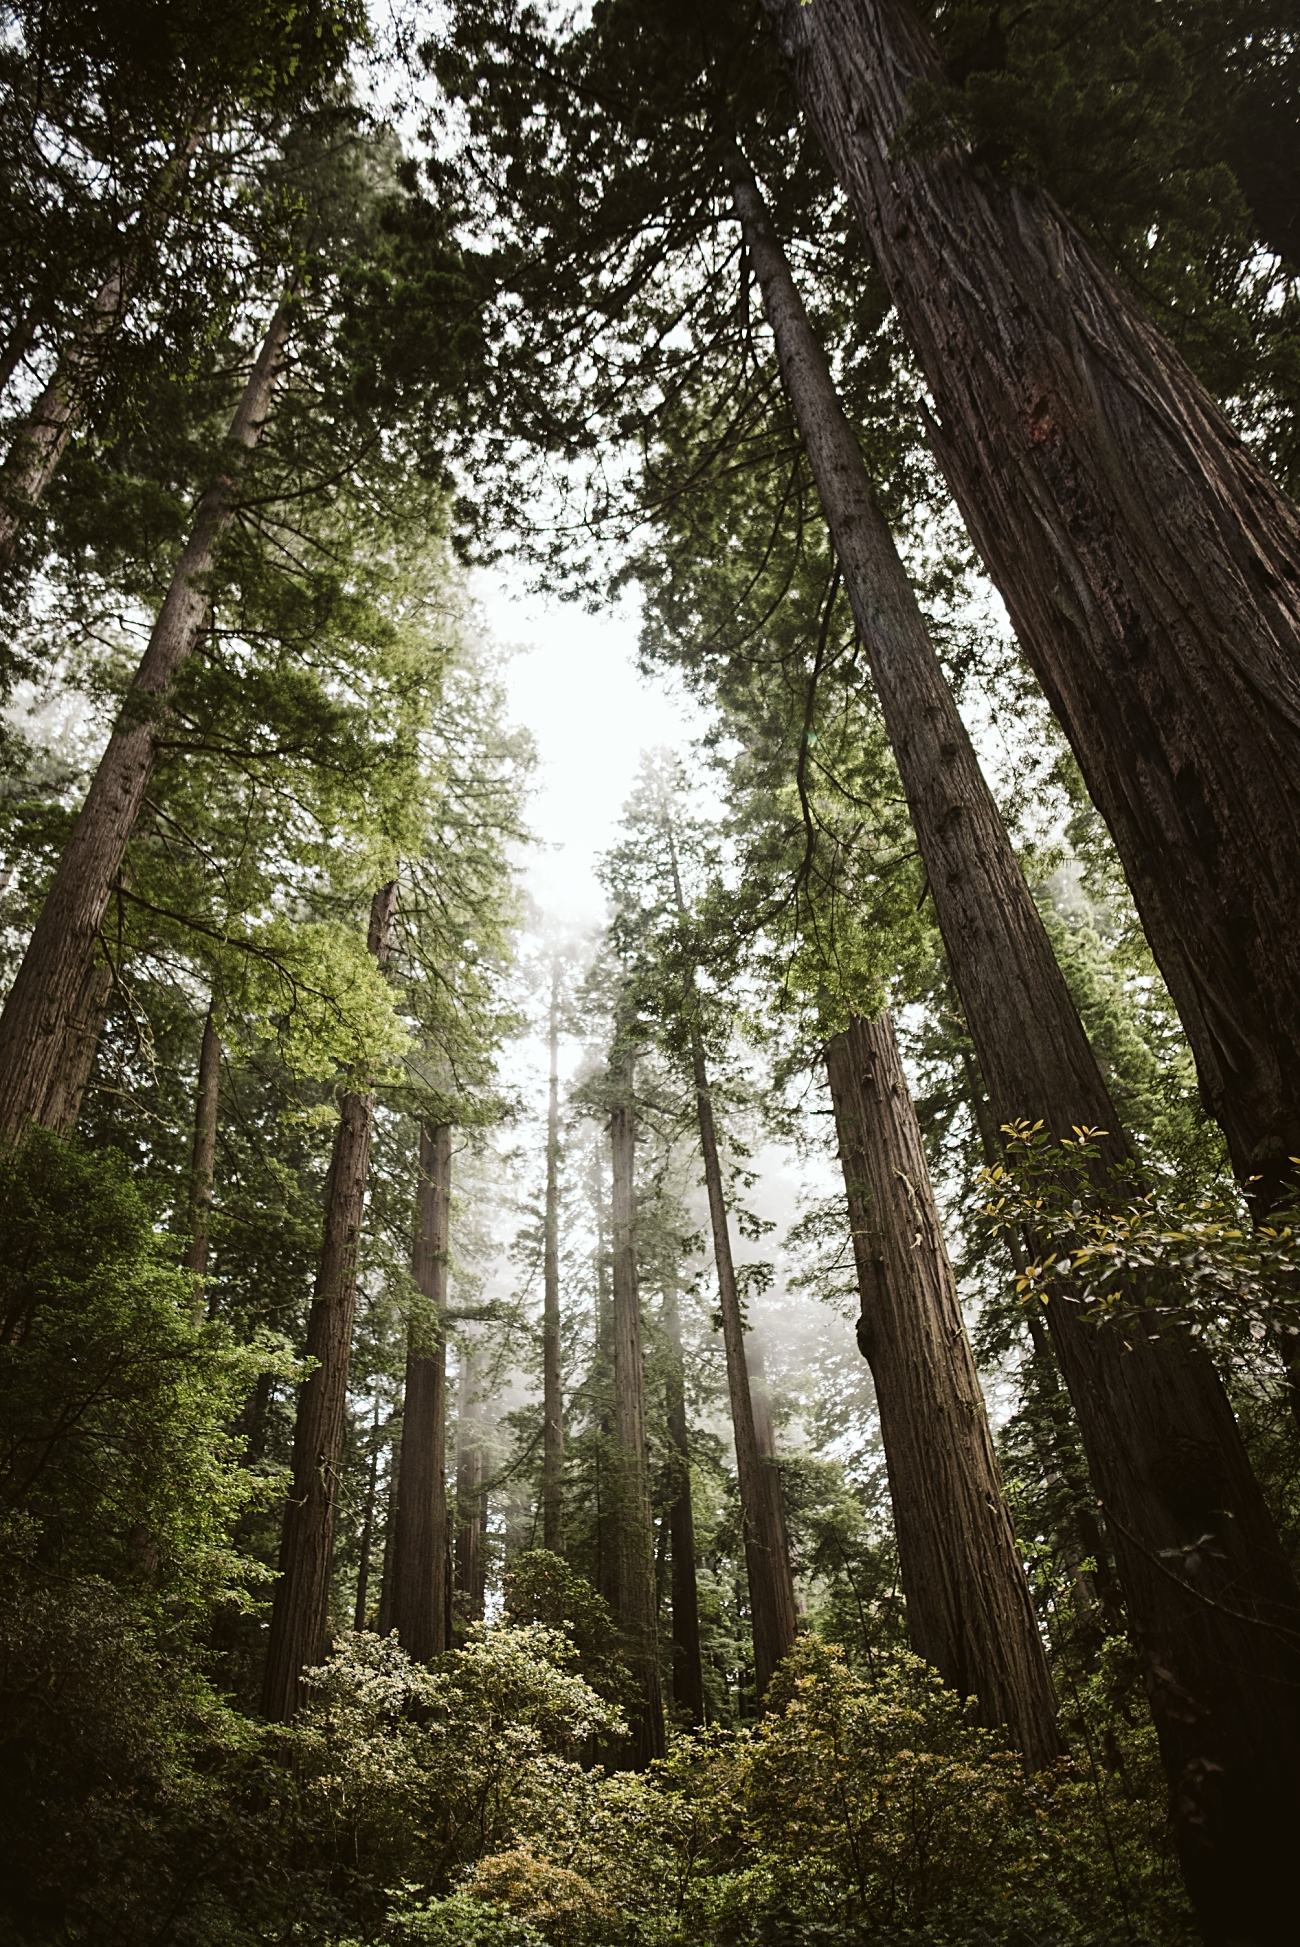 Camping in Redwoods National Park, Redwoods Travel Guide, Travel Photographer